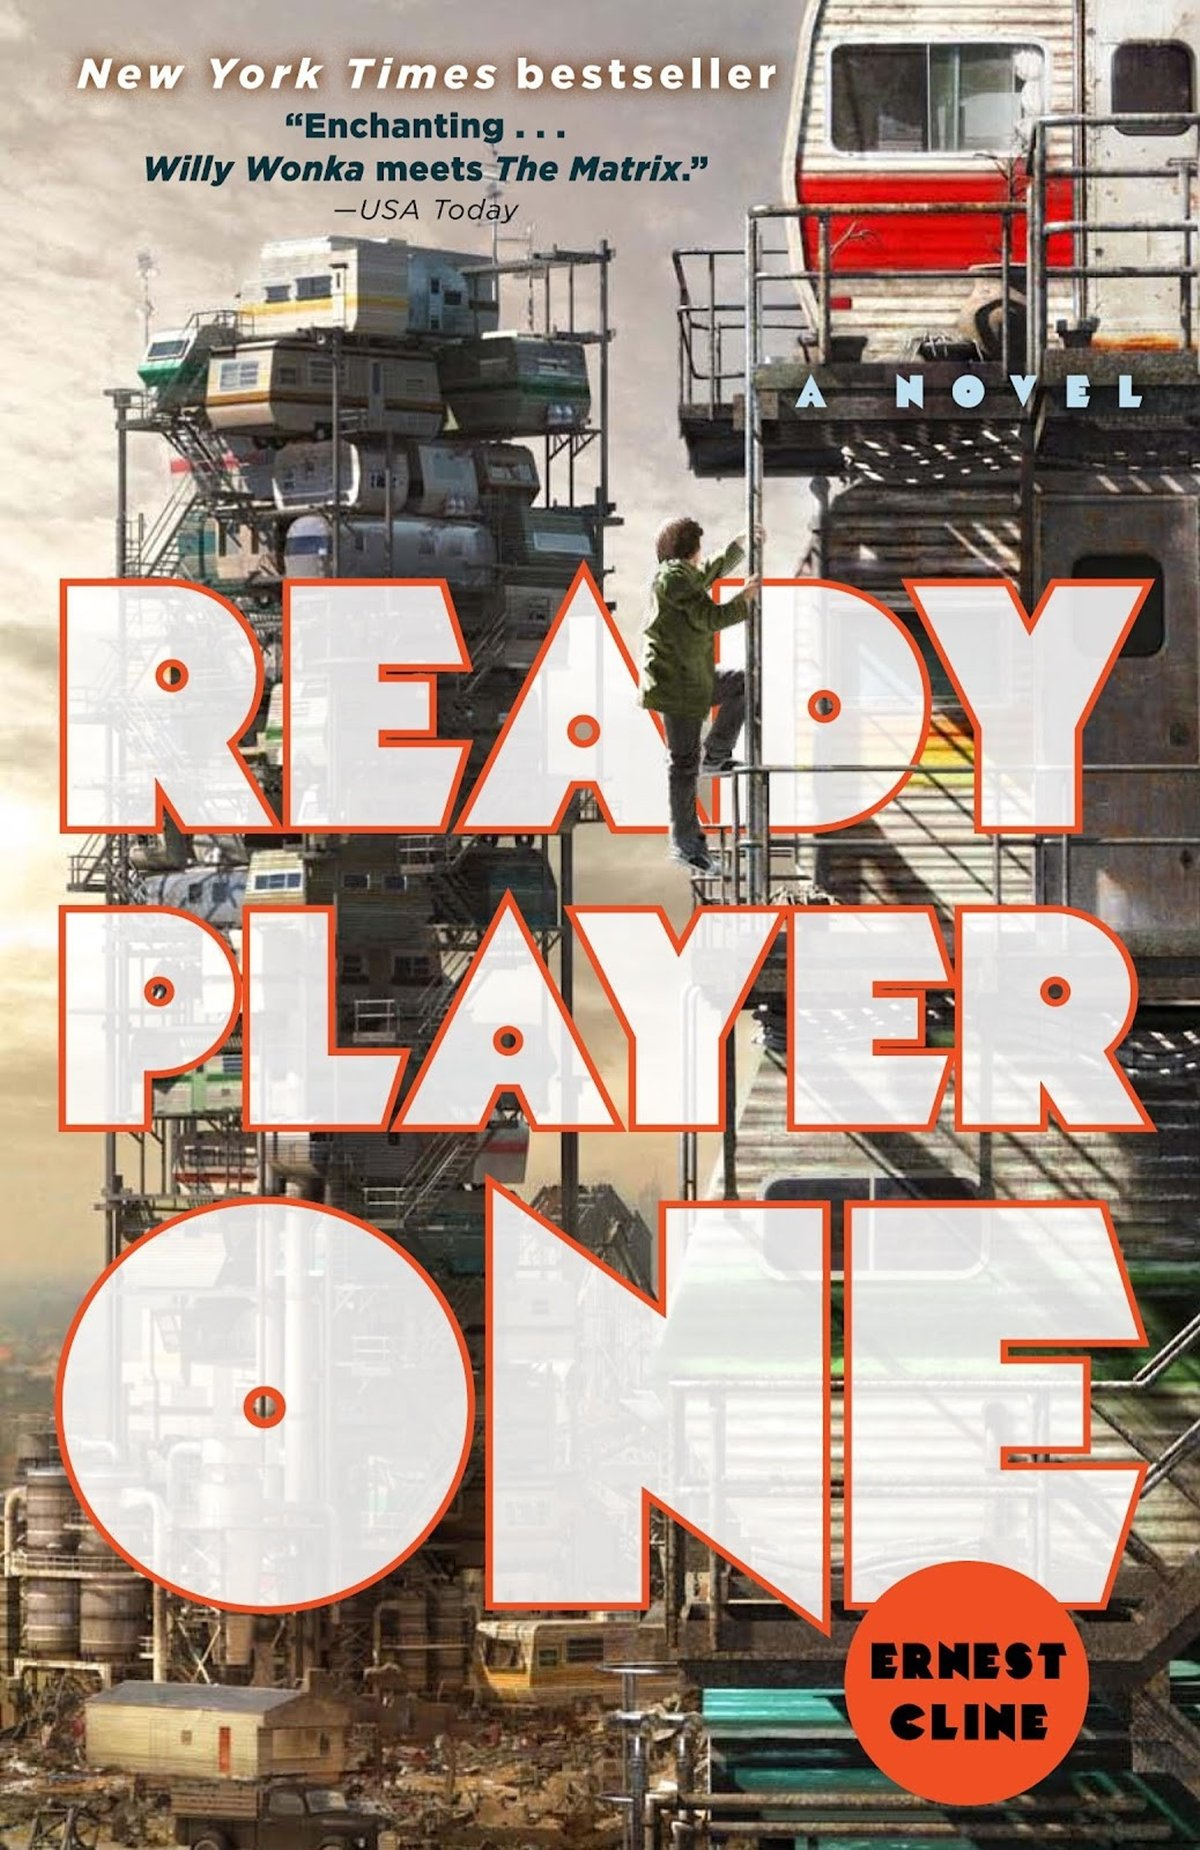 BOOK 12 Classic Film Posters Are Recreated To Promote Spielberg's 'Ready Player One'